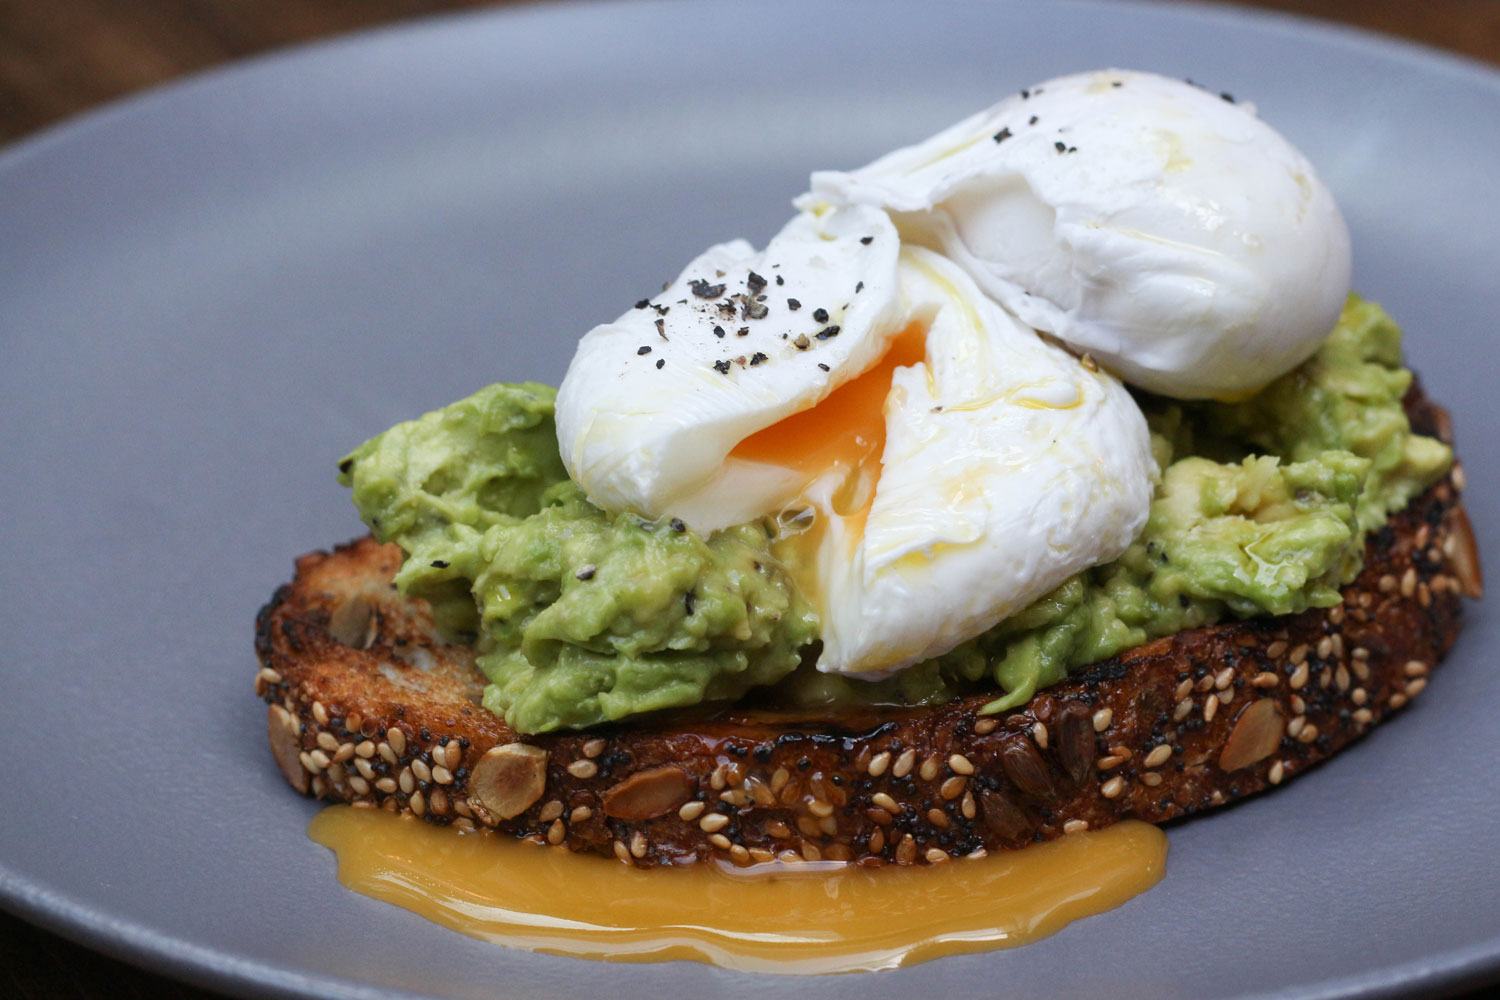 poached eggs and avocado at galvin hop for mothers day in London